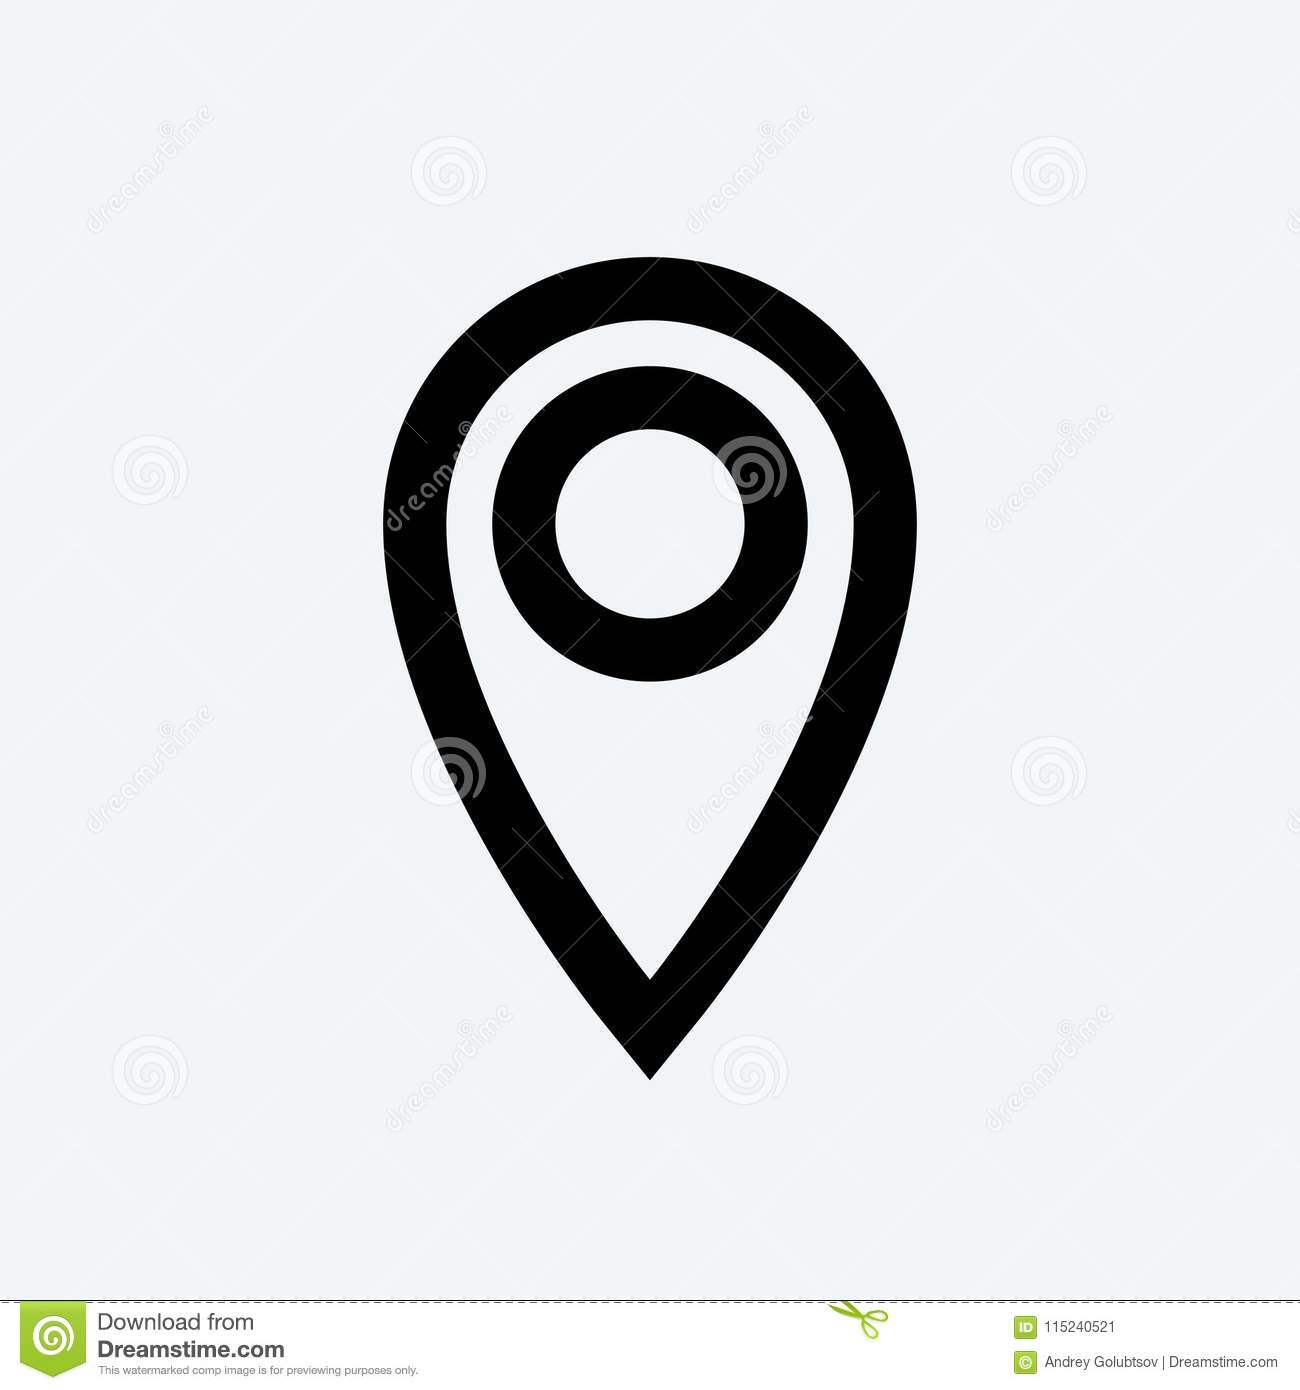 location pin outline vector gps icon stock vector illustration of